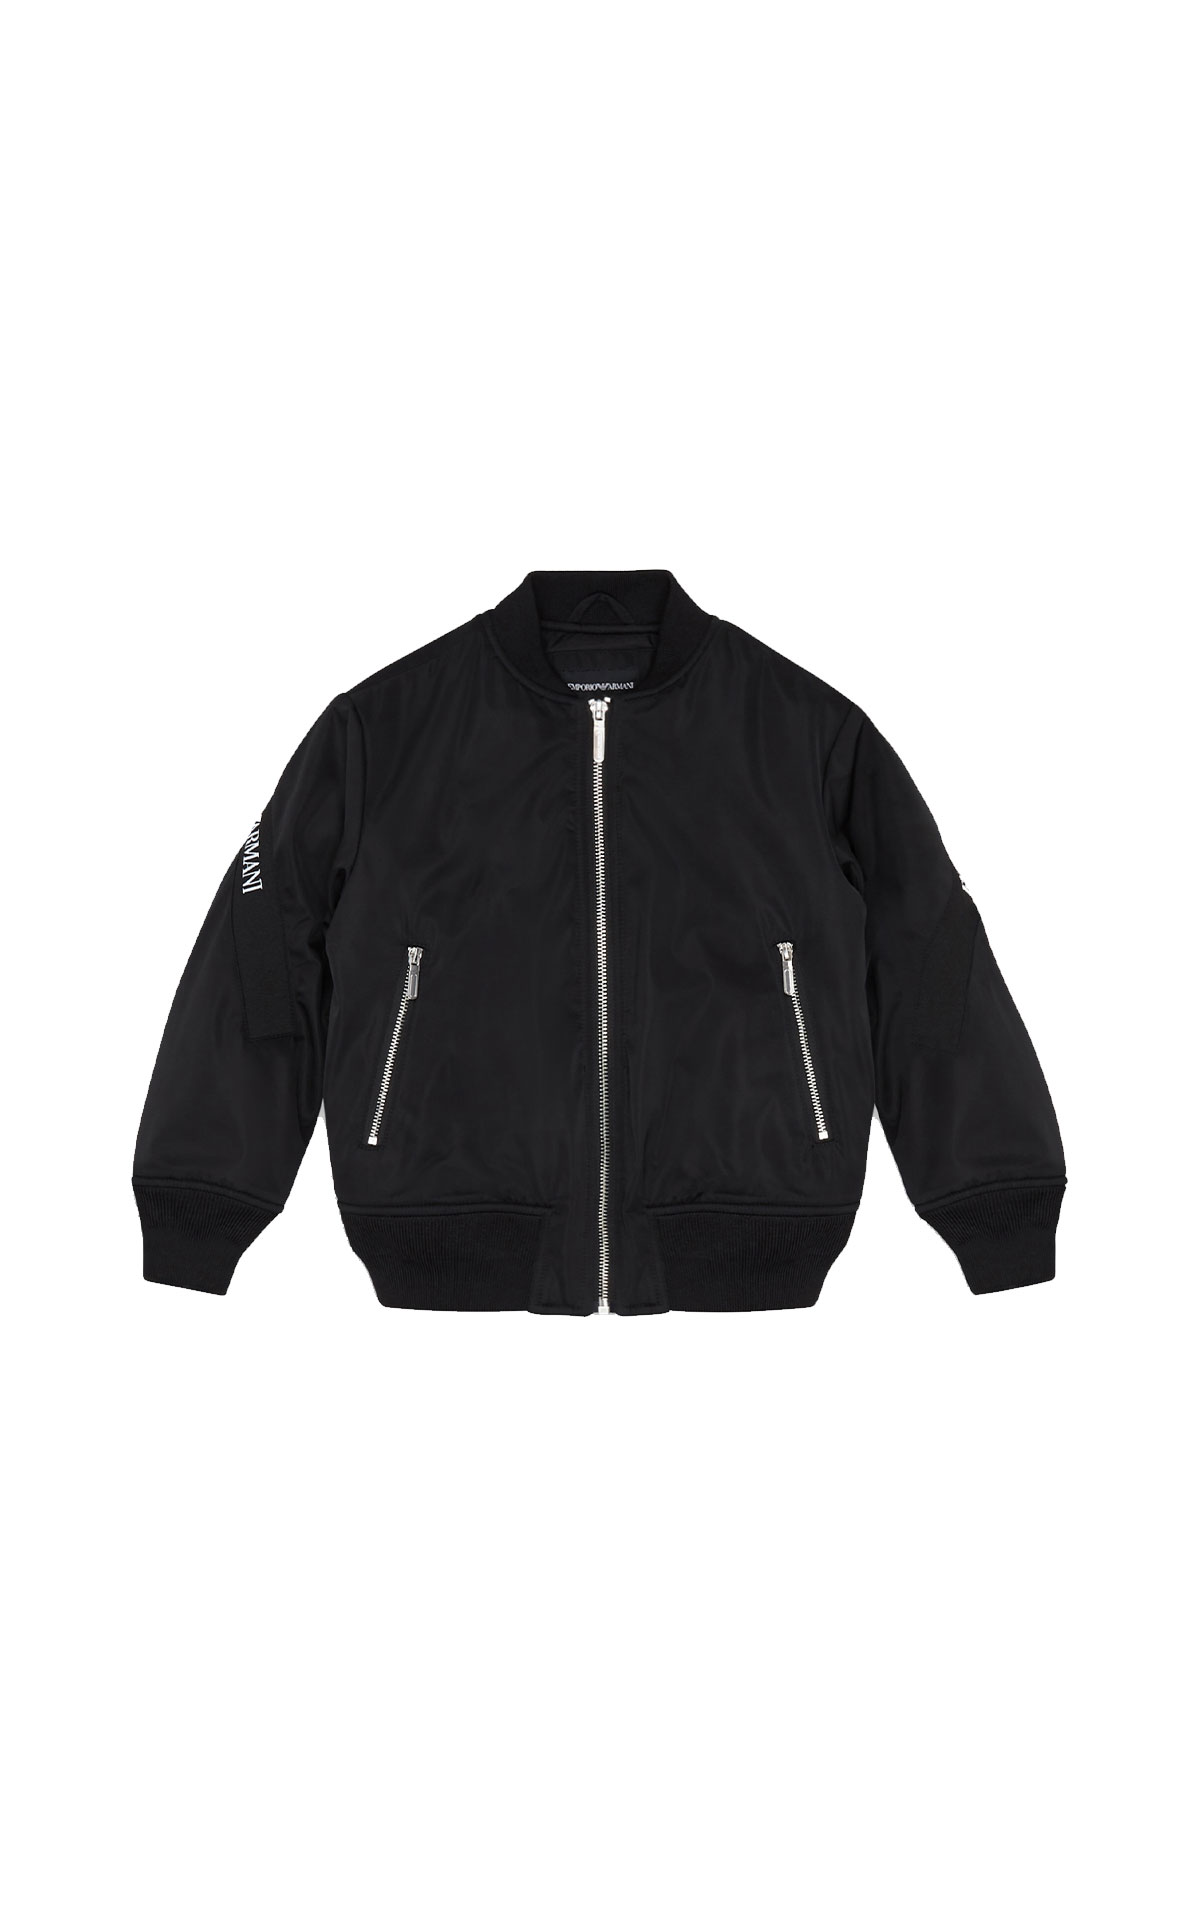 Armani Boys jacket from Bicester Village